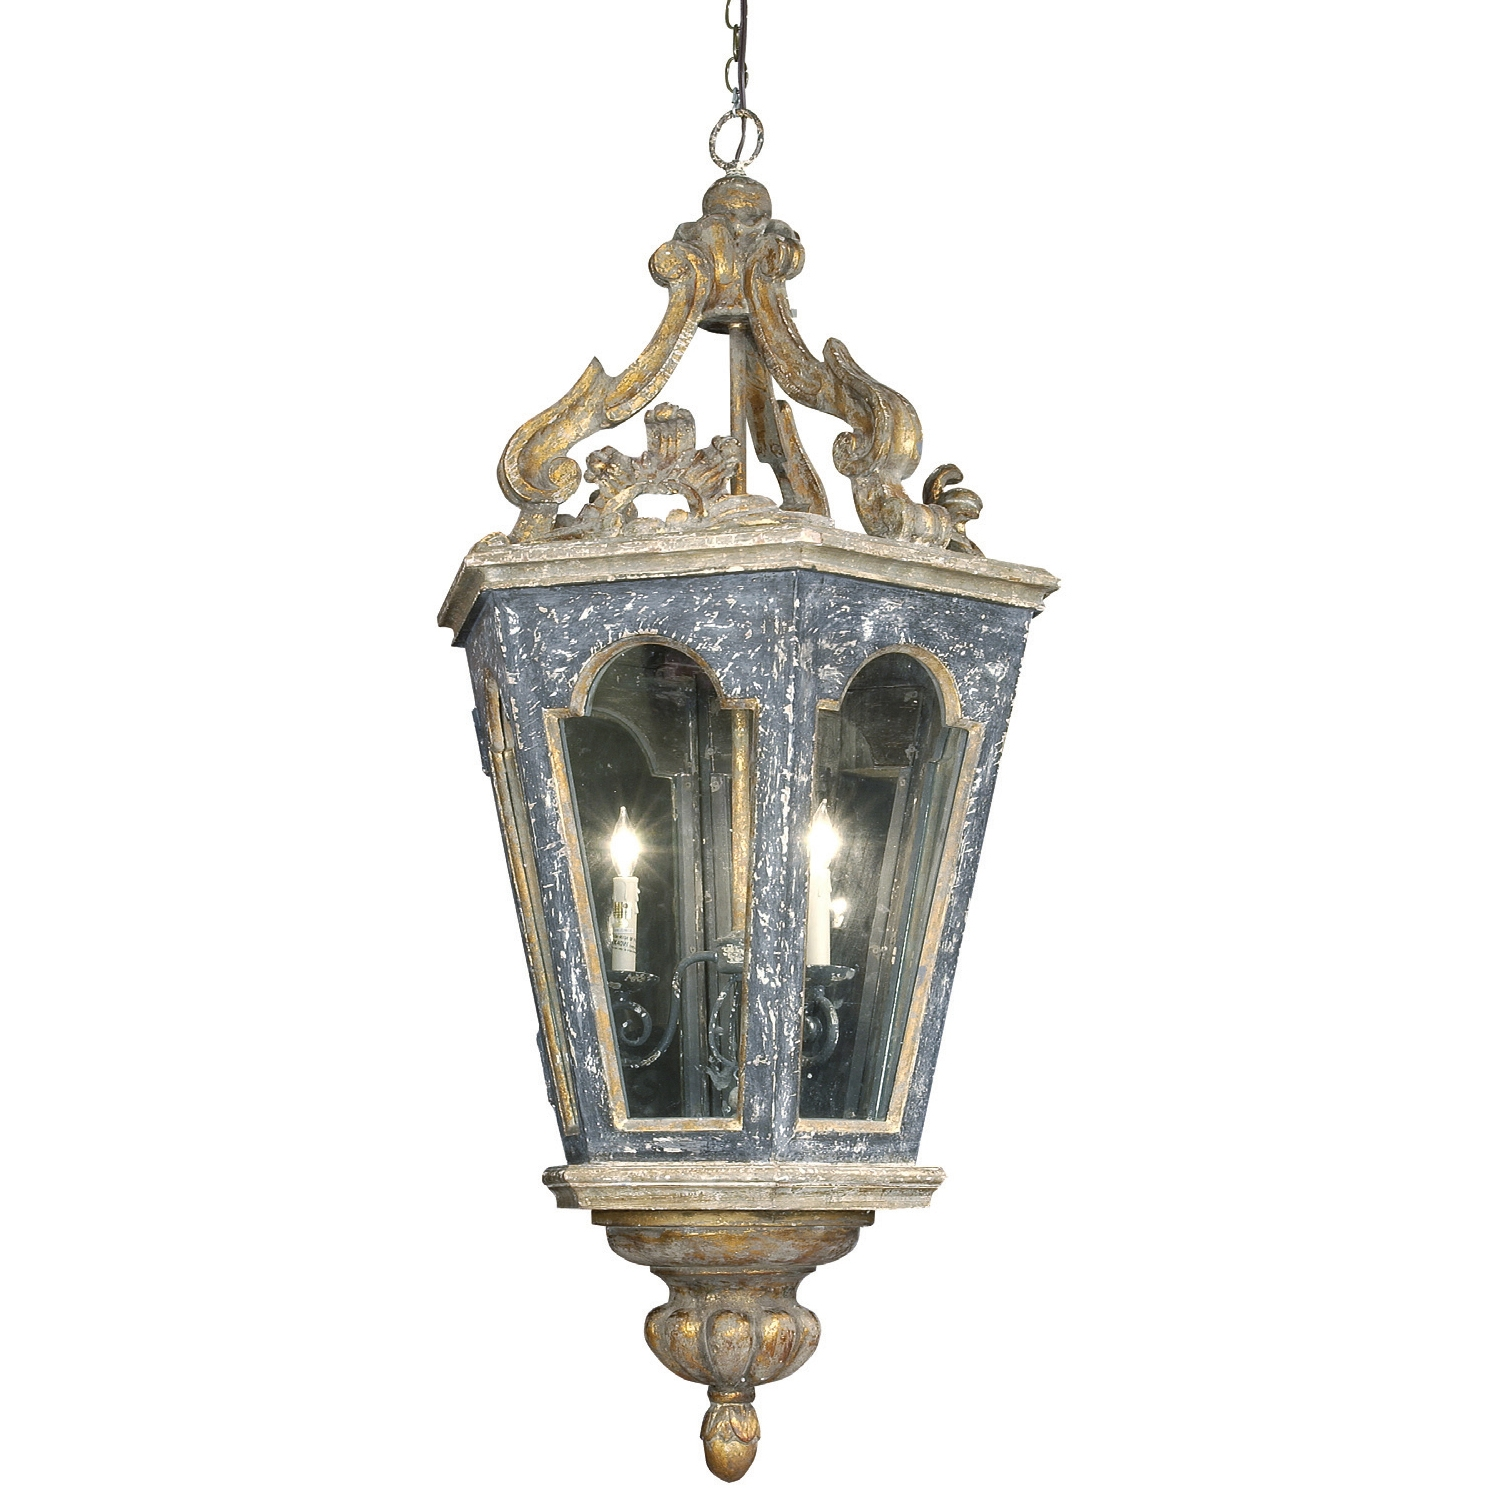 Antique Reproduction Lighting Style Vintage Chandeliers With Regard To Vintage Style Chandeliers (#3 of 12)